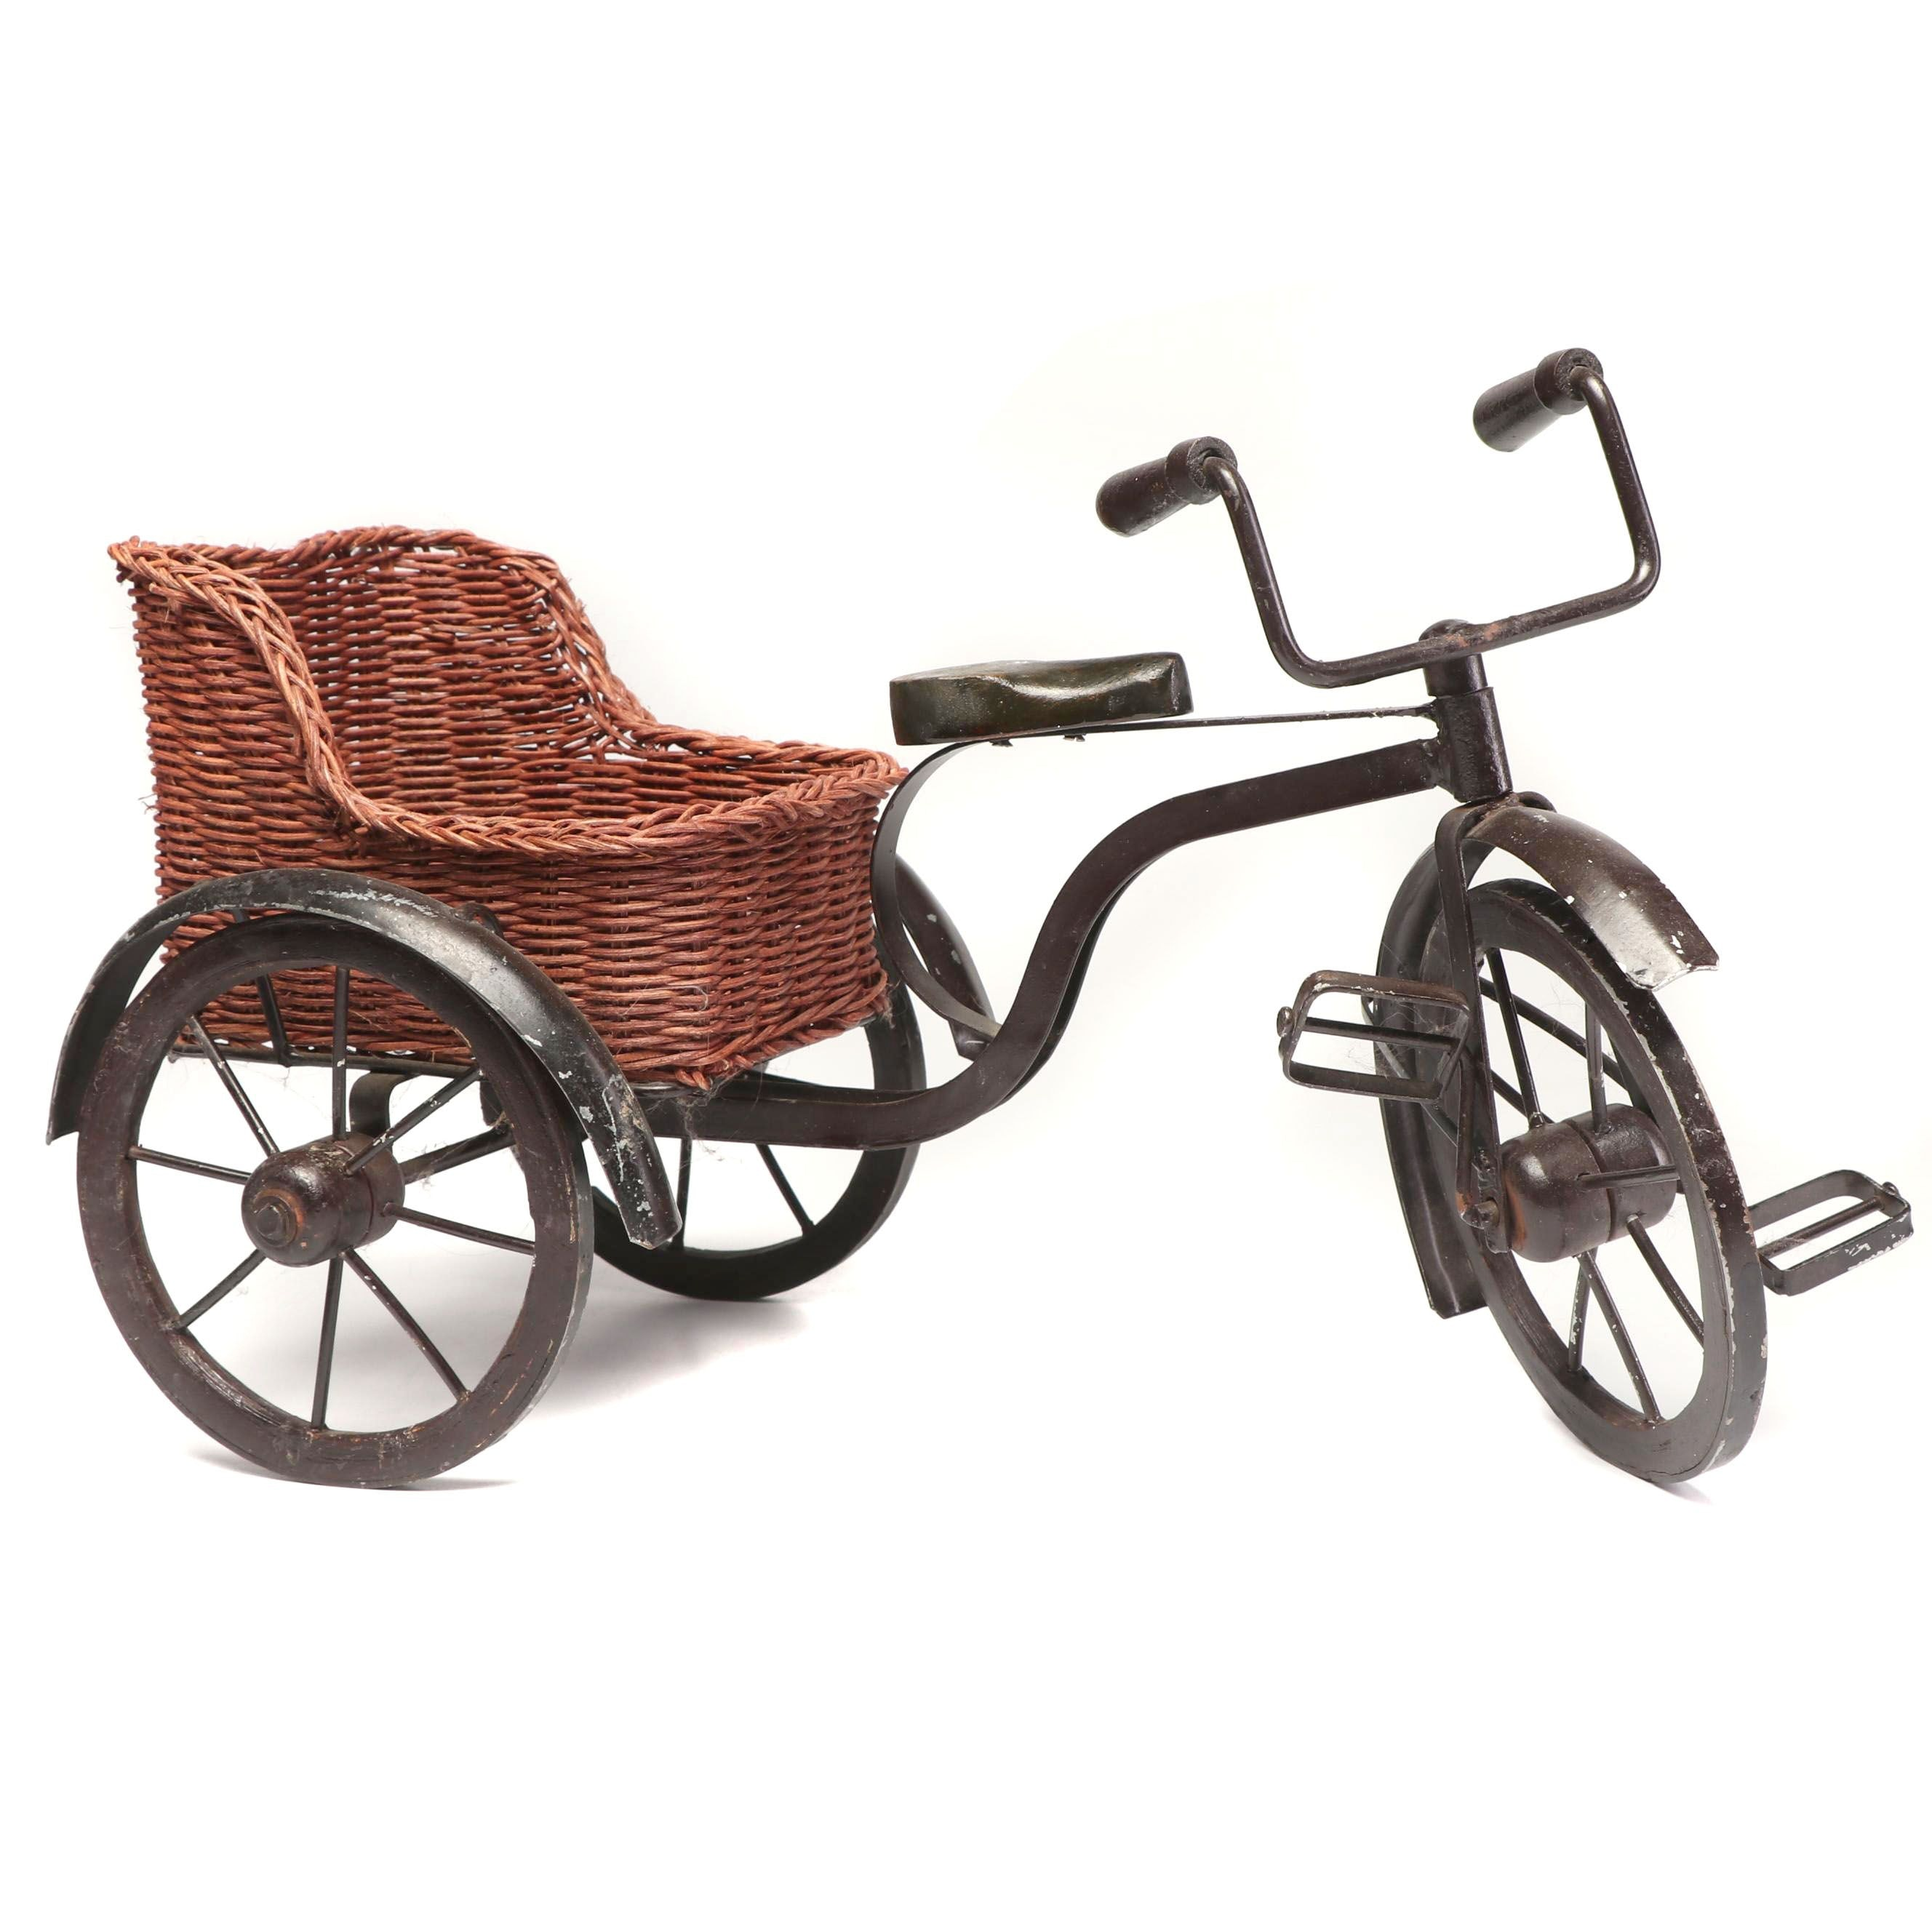 Decorative Miniature Tricycle with Basket